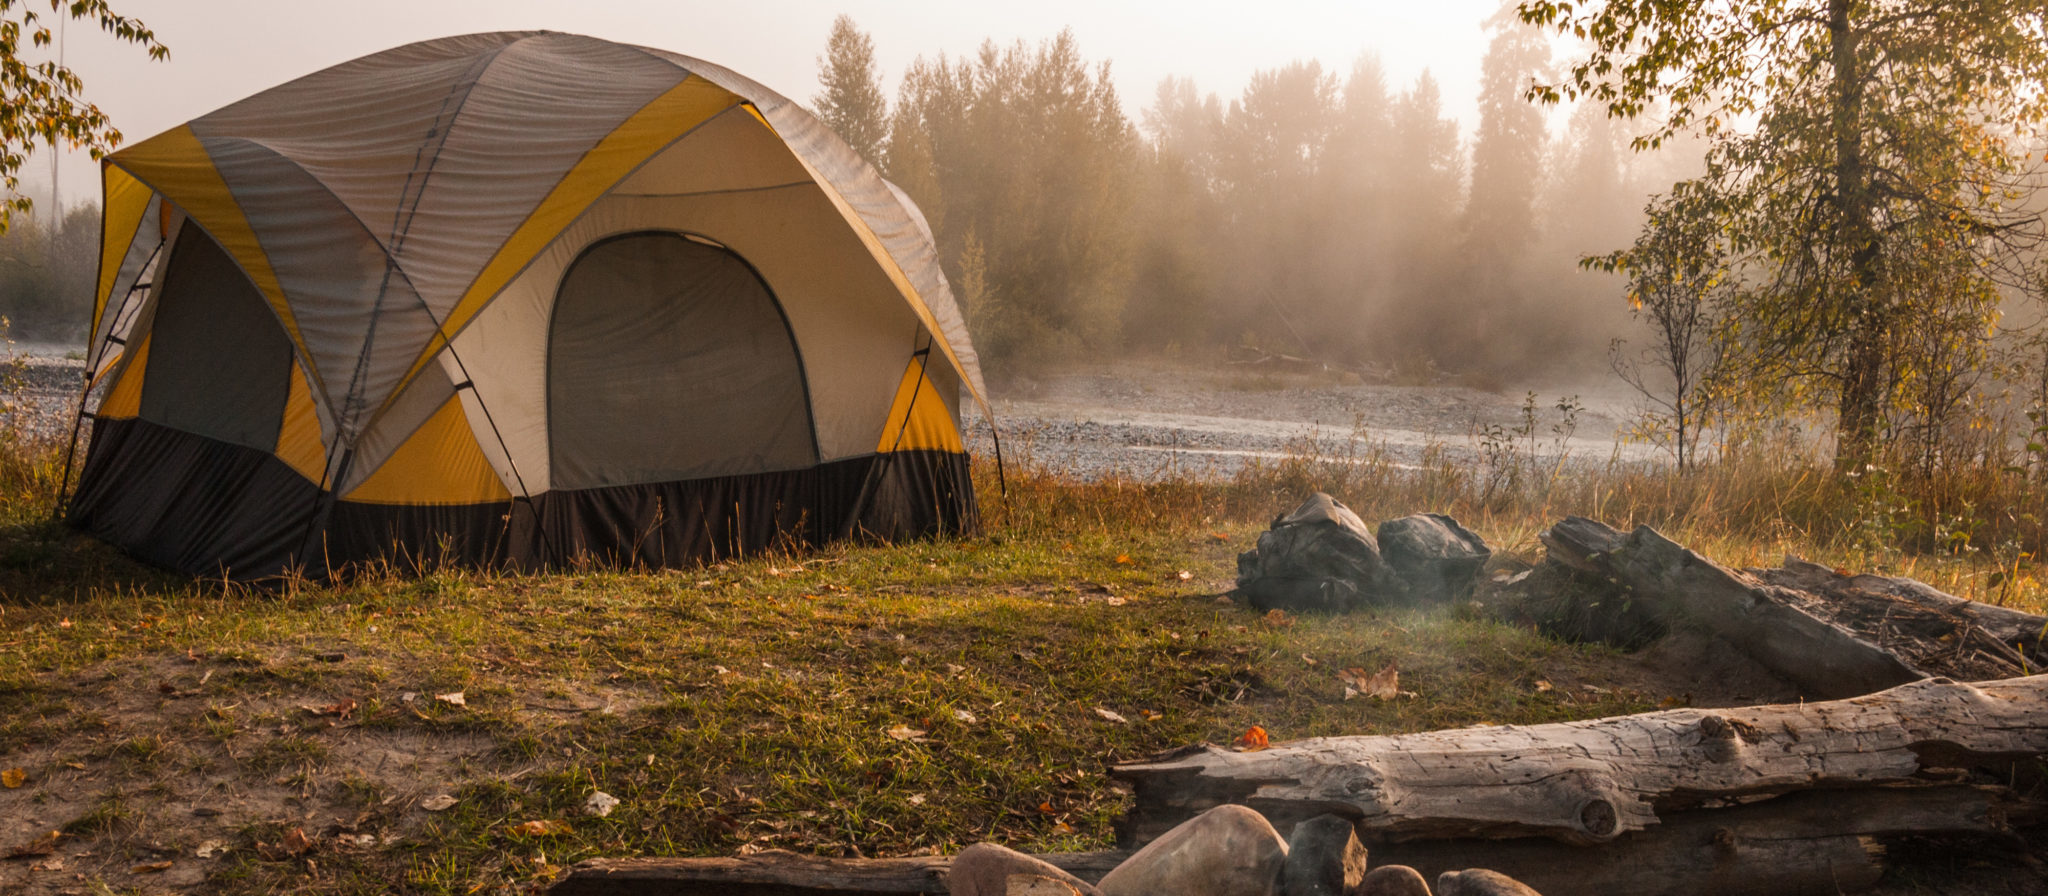 Can you spot what's missing from this campsite? Hint: it's the subject of our guide today.